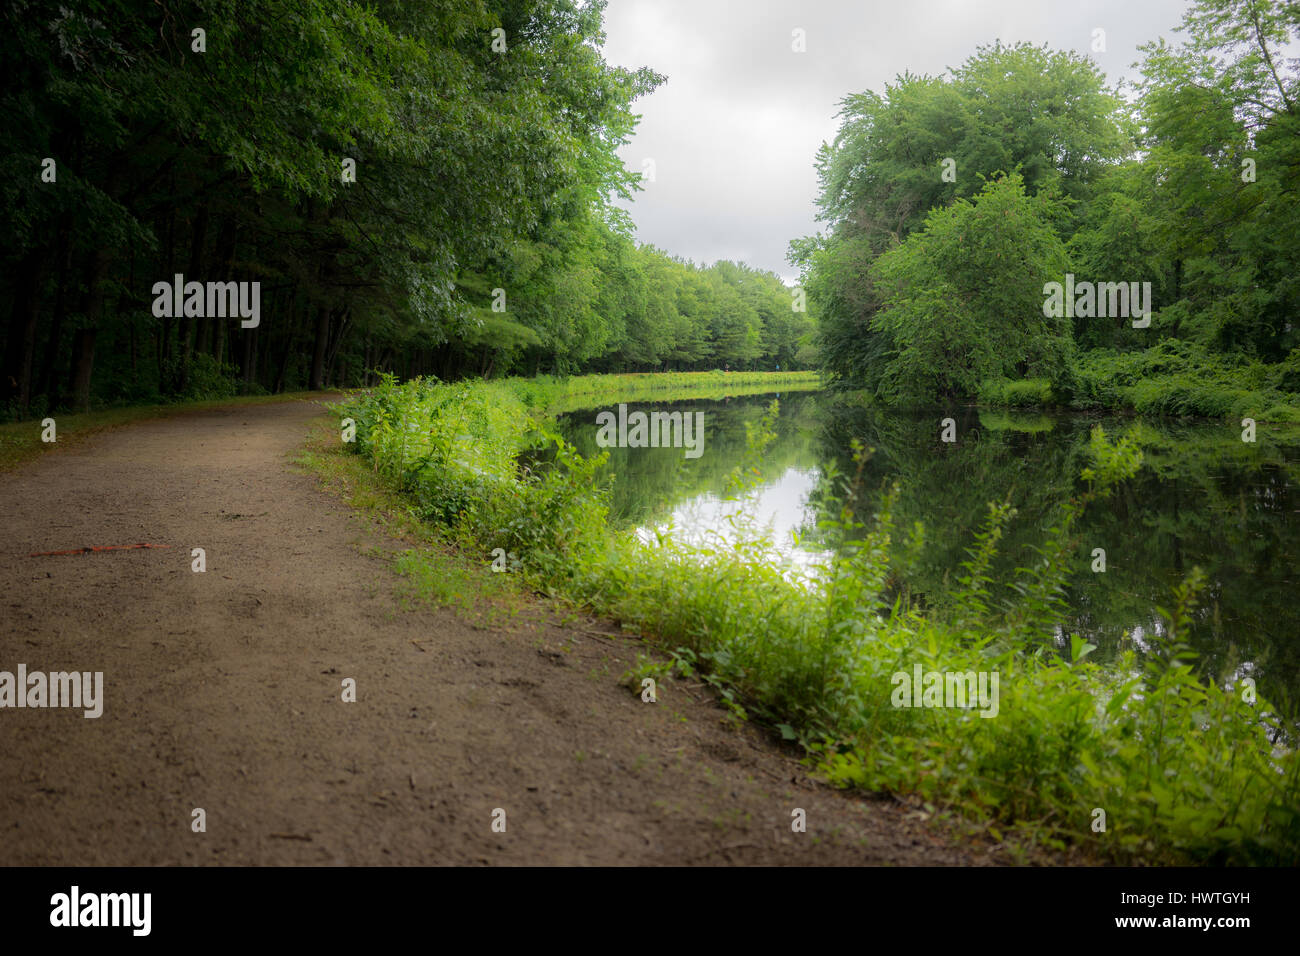 A dirt path meanders along a still pond surrounded by green landscape. - Stock Image